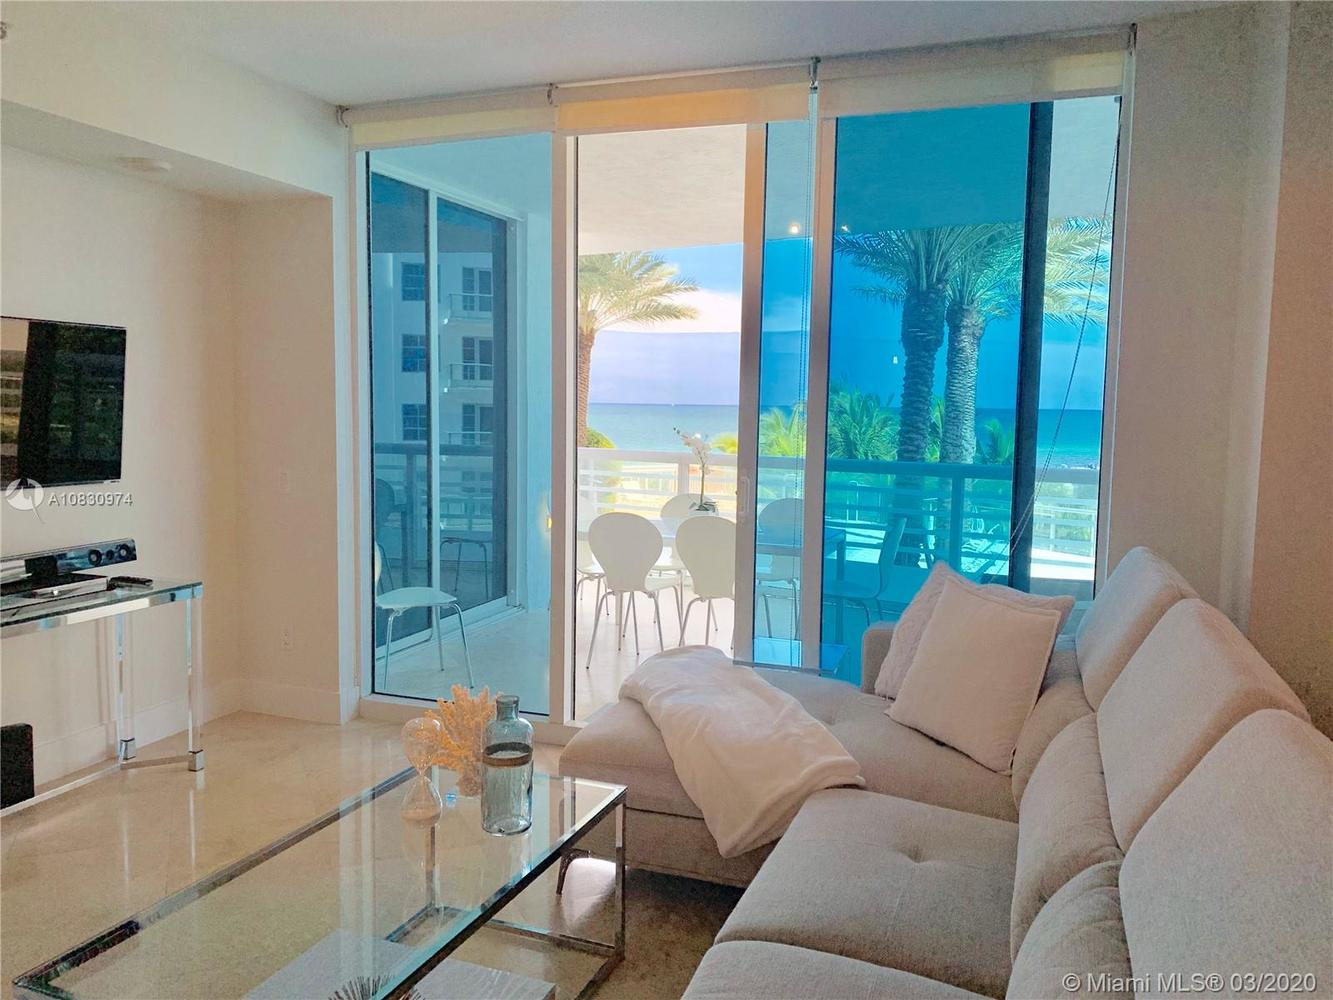 3801 Collins Avenue, Unit 503 Miami Beach, FL 33140